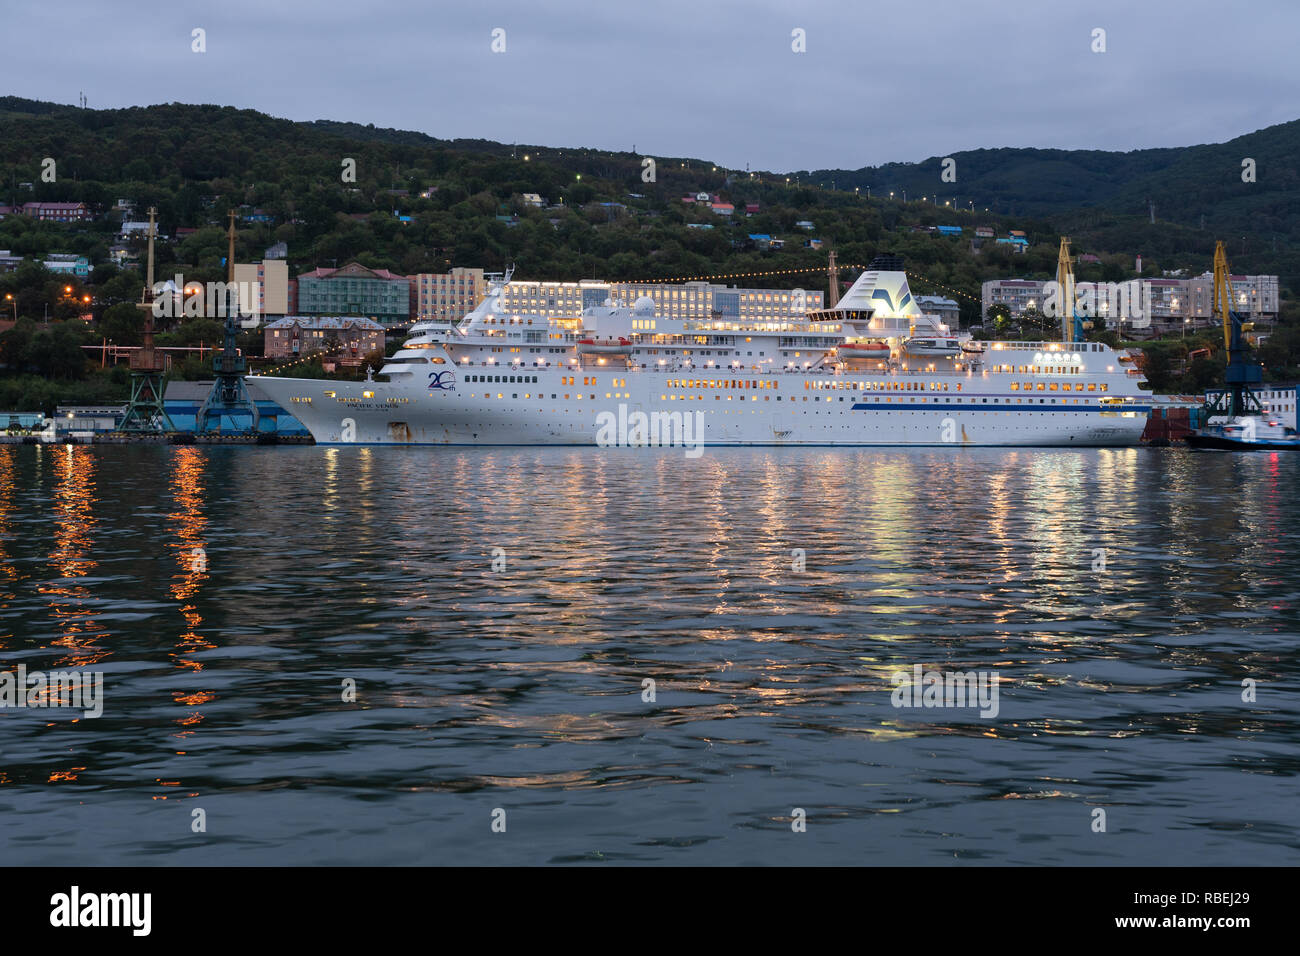 Picturesque night view of white Japanese cruise liner Pacific Venus anchored at pier in Petropavlovsk-Kamchatsky Seaport - Stock Image